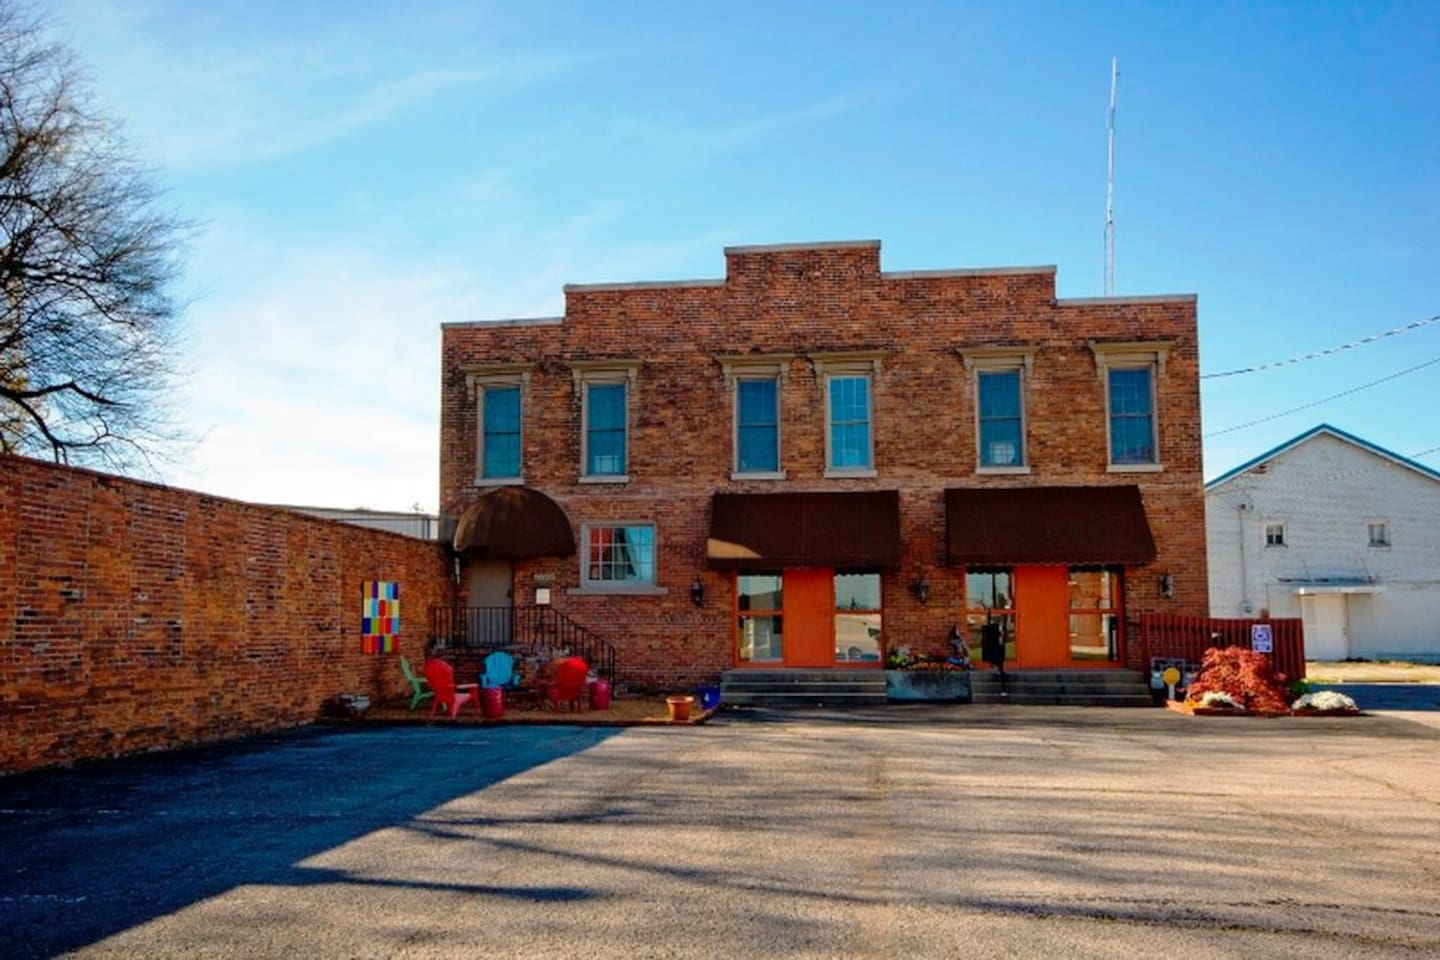 The 1860's Building was originally built by Anheuser Bush as a Beer Depot